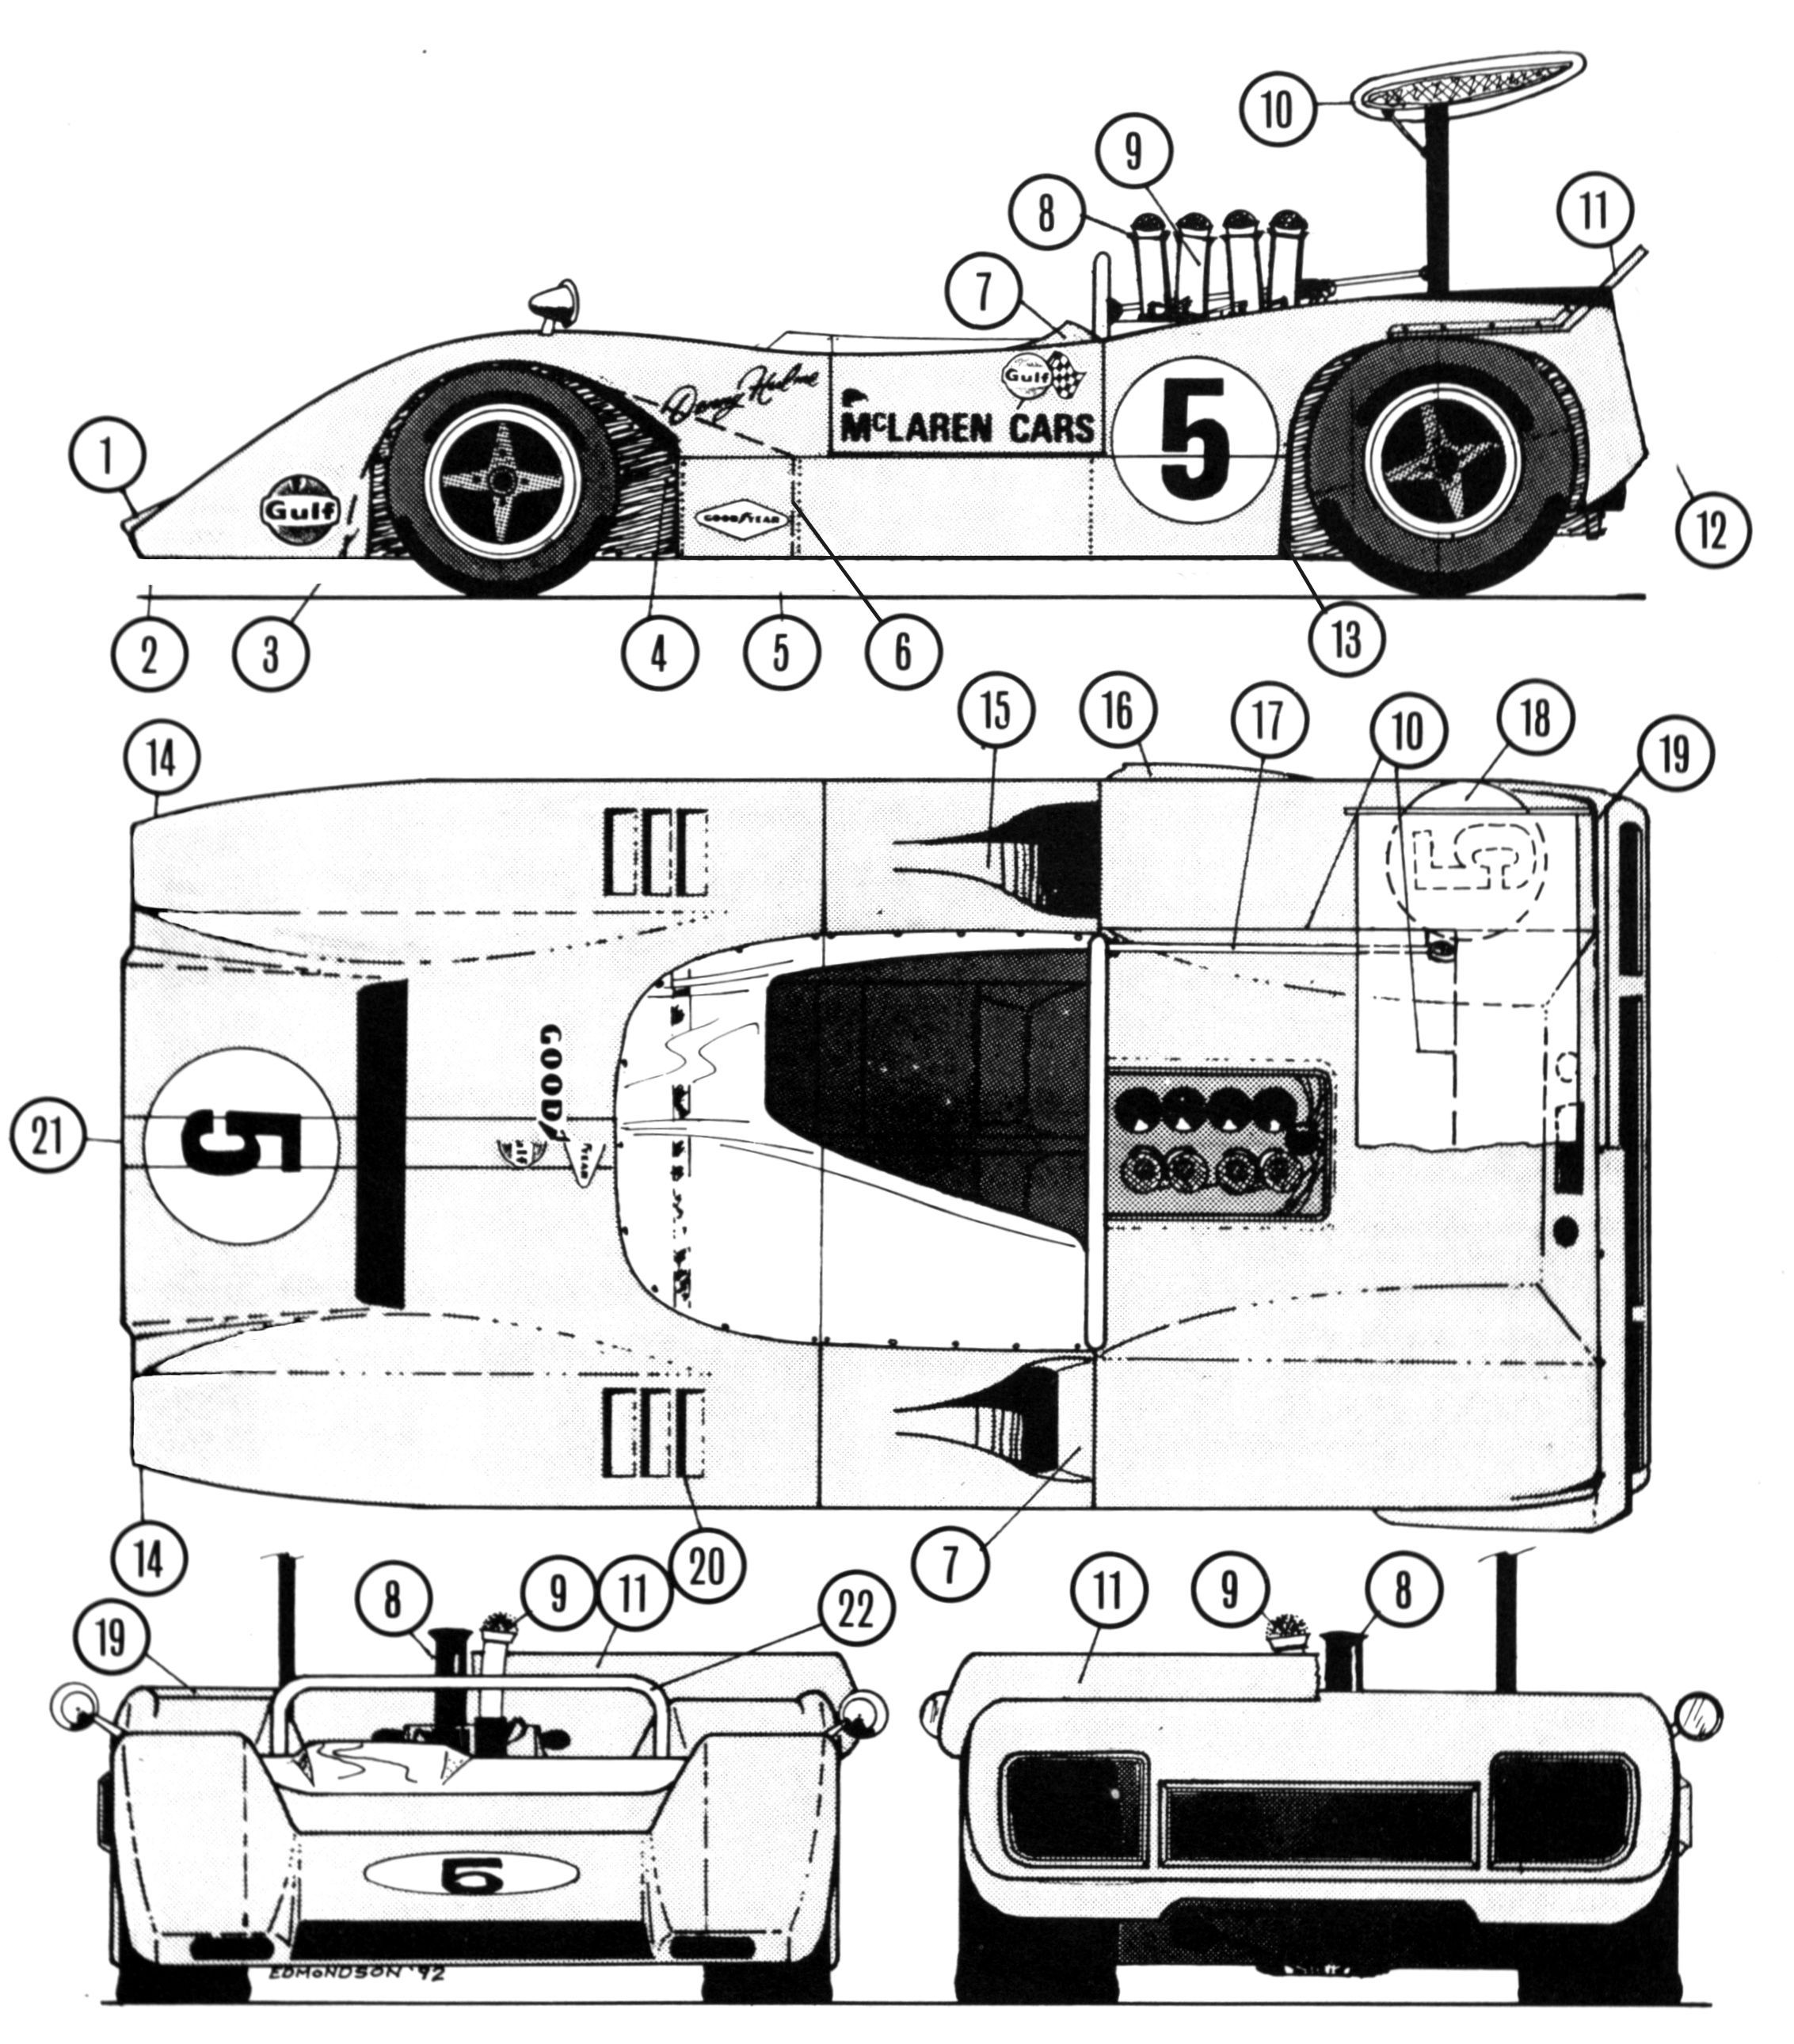 Mclaren m8a chevrolet can am kwick kiwis pinterest chevrolet cars and ford